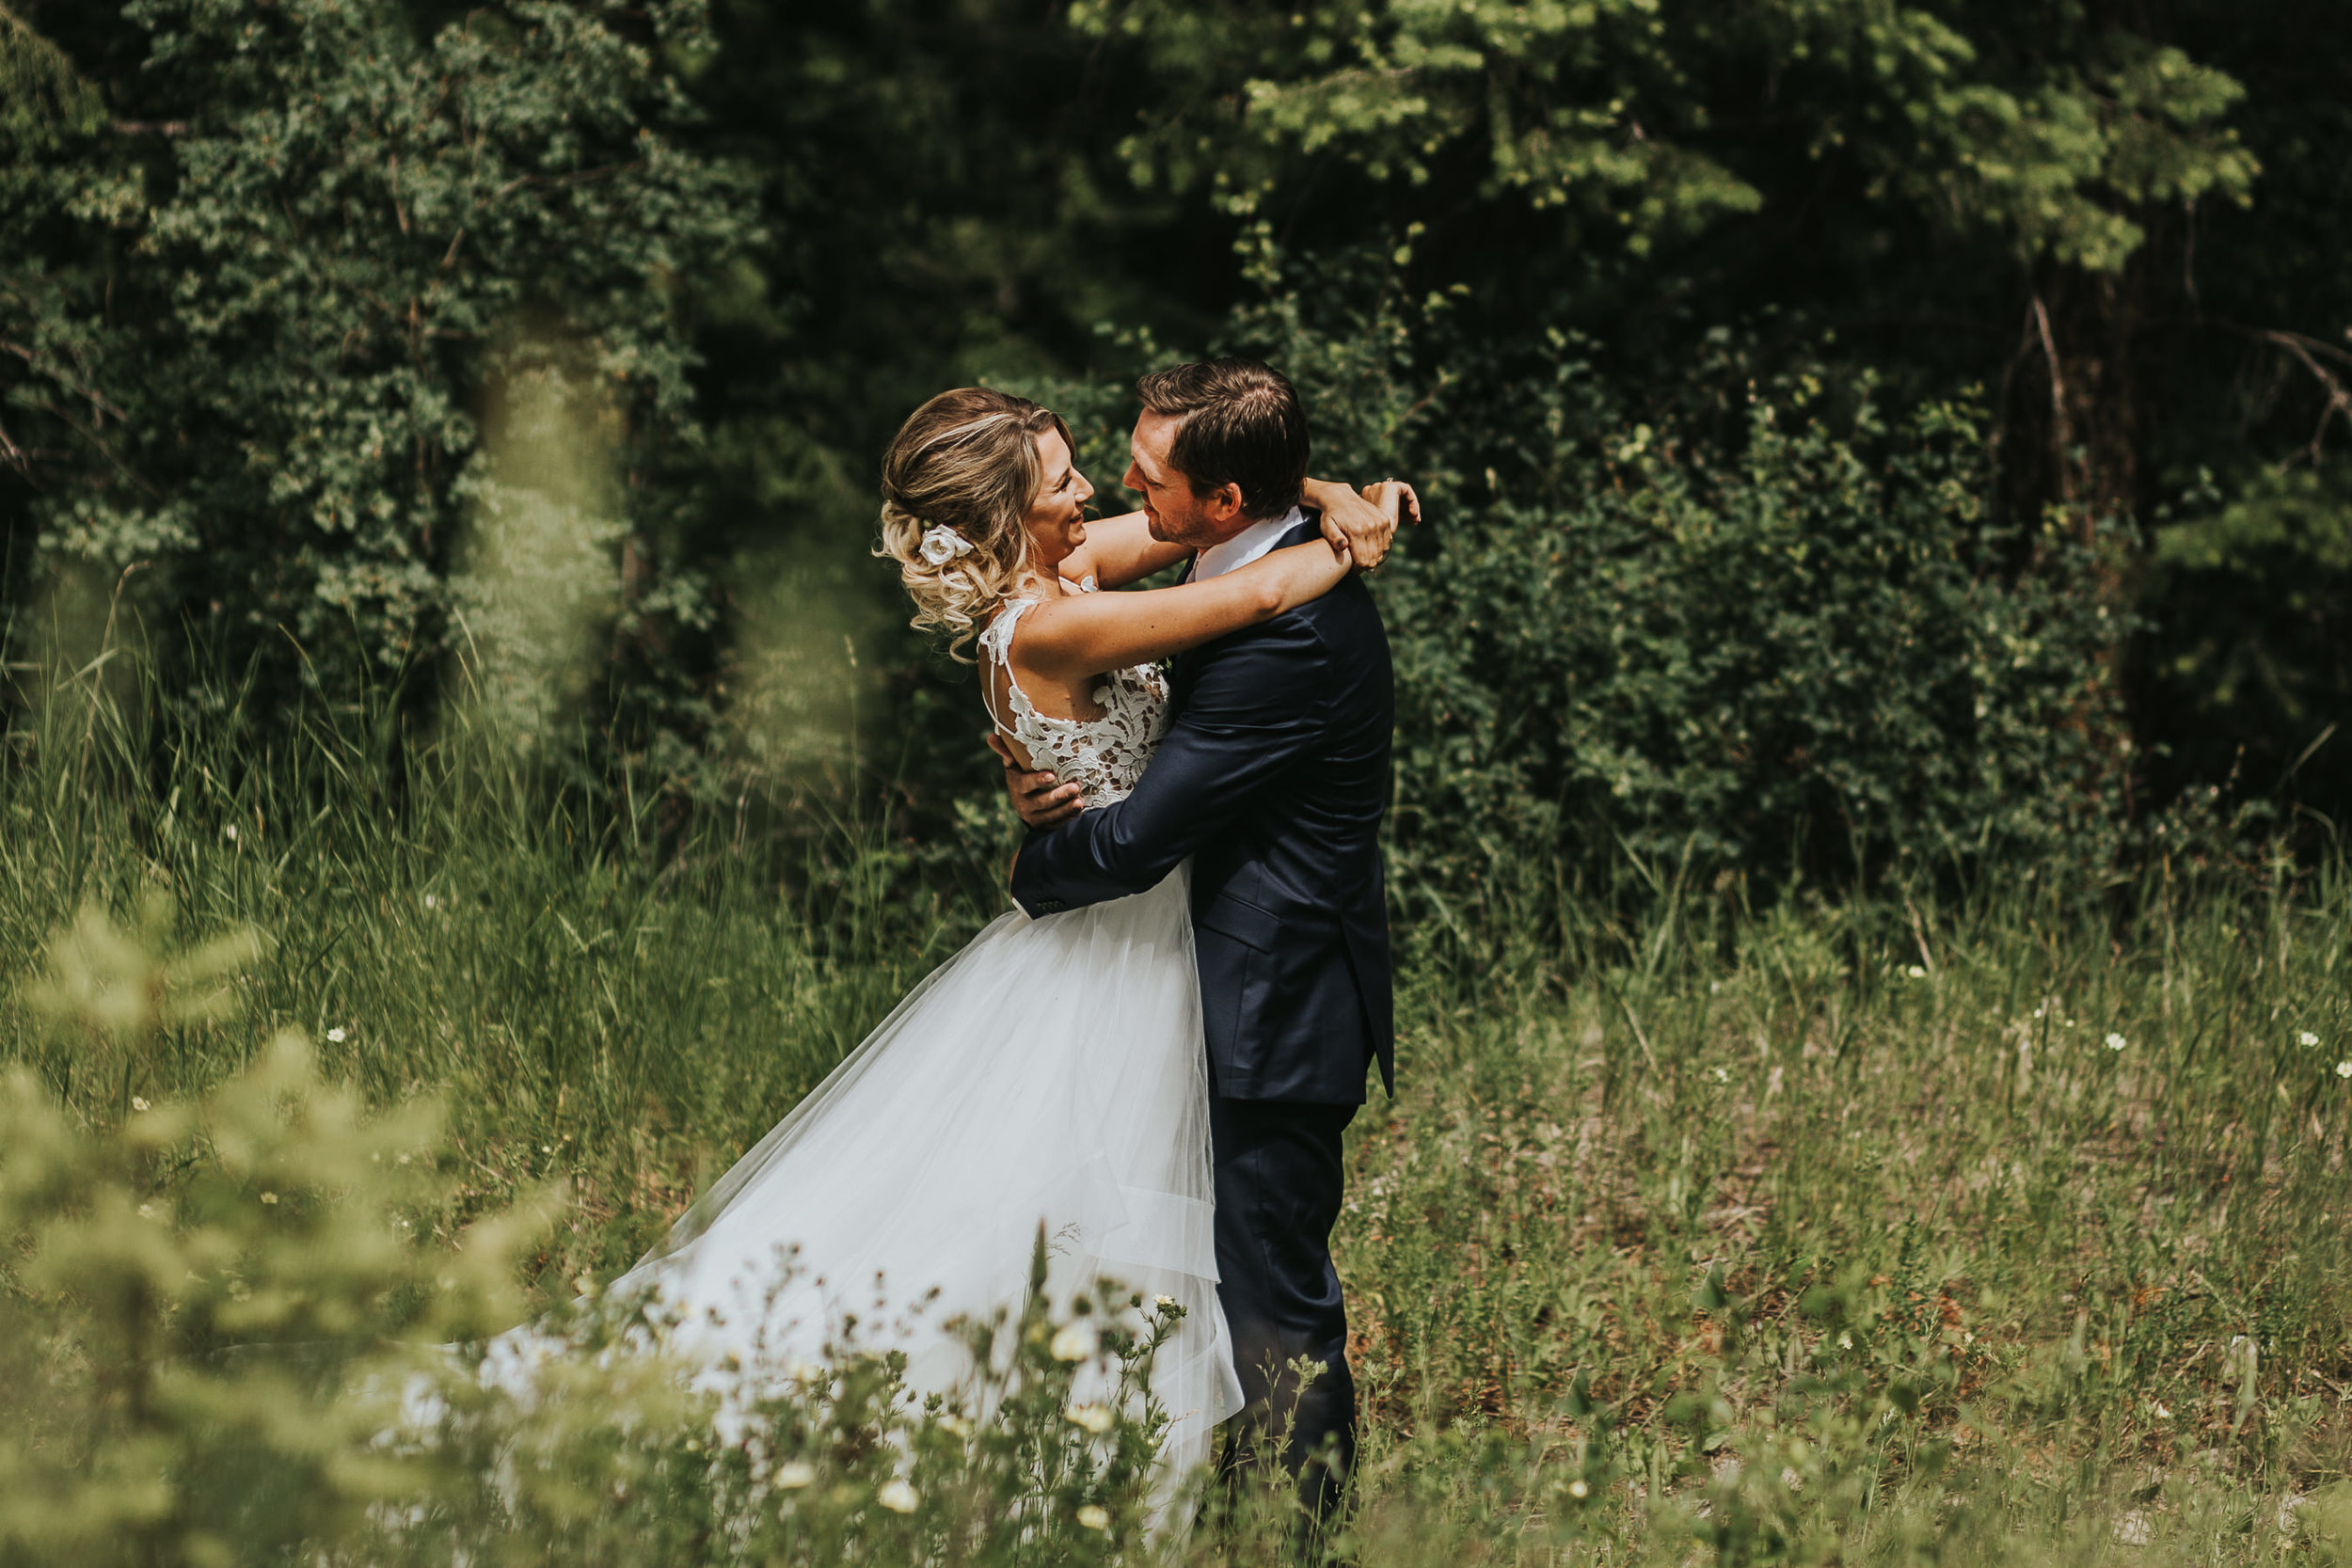 Boho Bride and Groom Dancing in Wildflowers Canmore Wedding